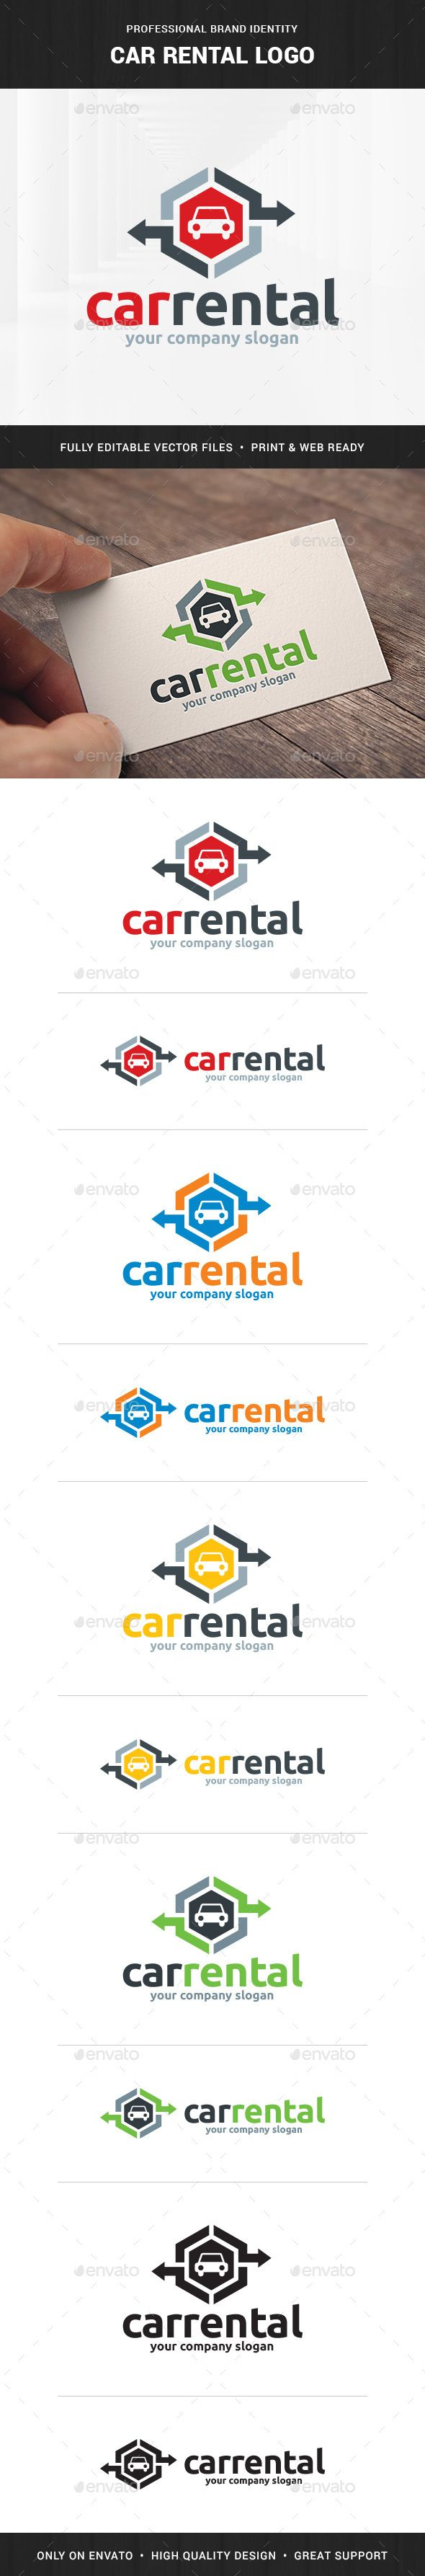 Car Rental Logo Template — Photoshop PSD #rent #PSD logo • Available here → https://graphicriver.net/item/car-rental-logo-template/10337056?ref=pxcr